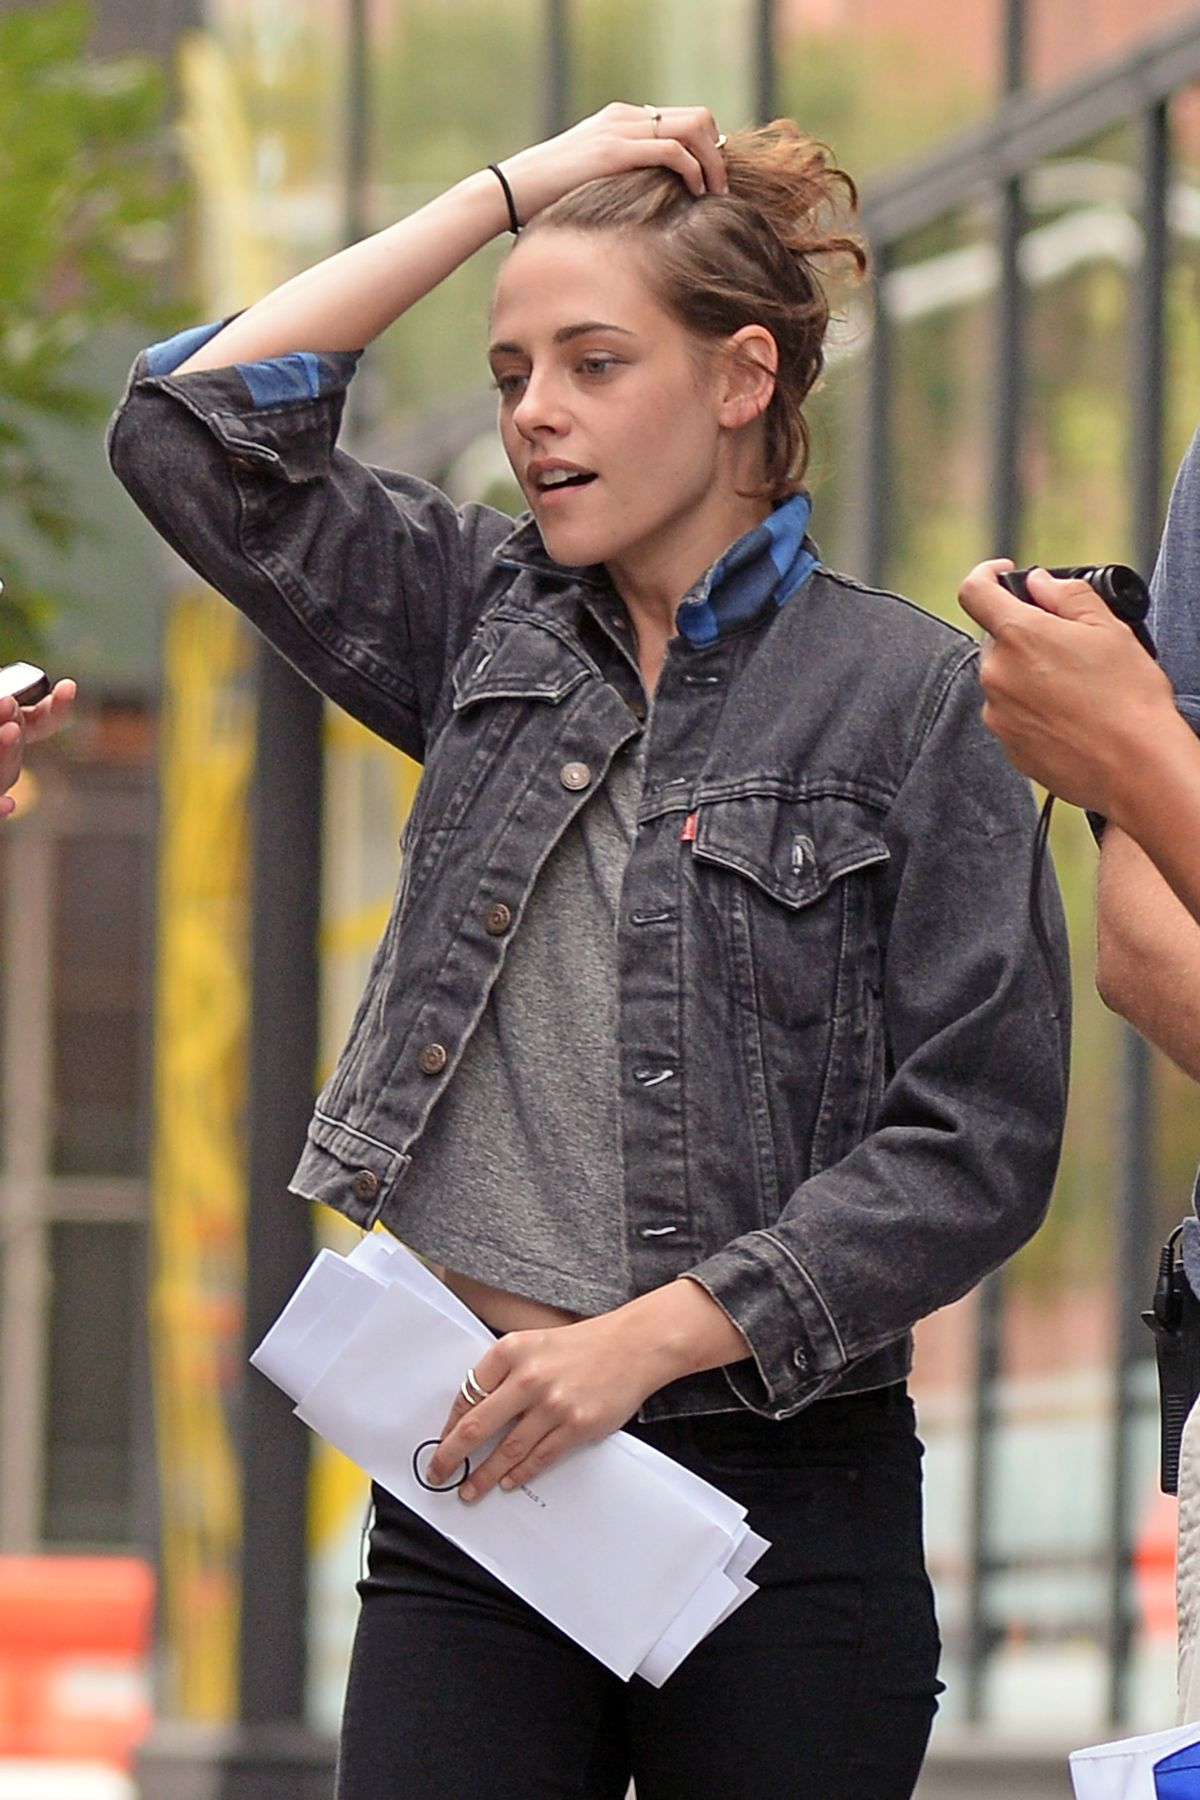 Kristen Stewart On The Set Of Woody Allen New Movie In New York 09 21 2015 Hawtcelebs